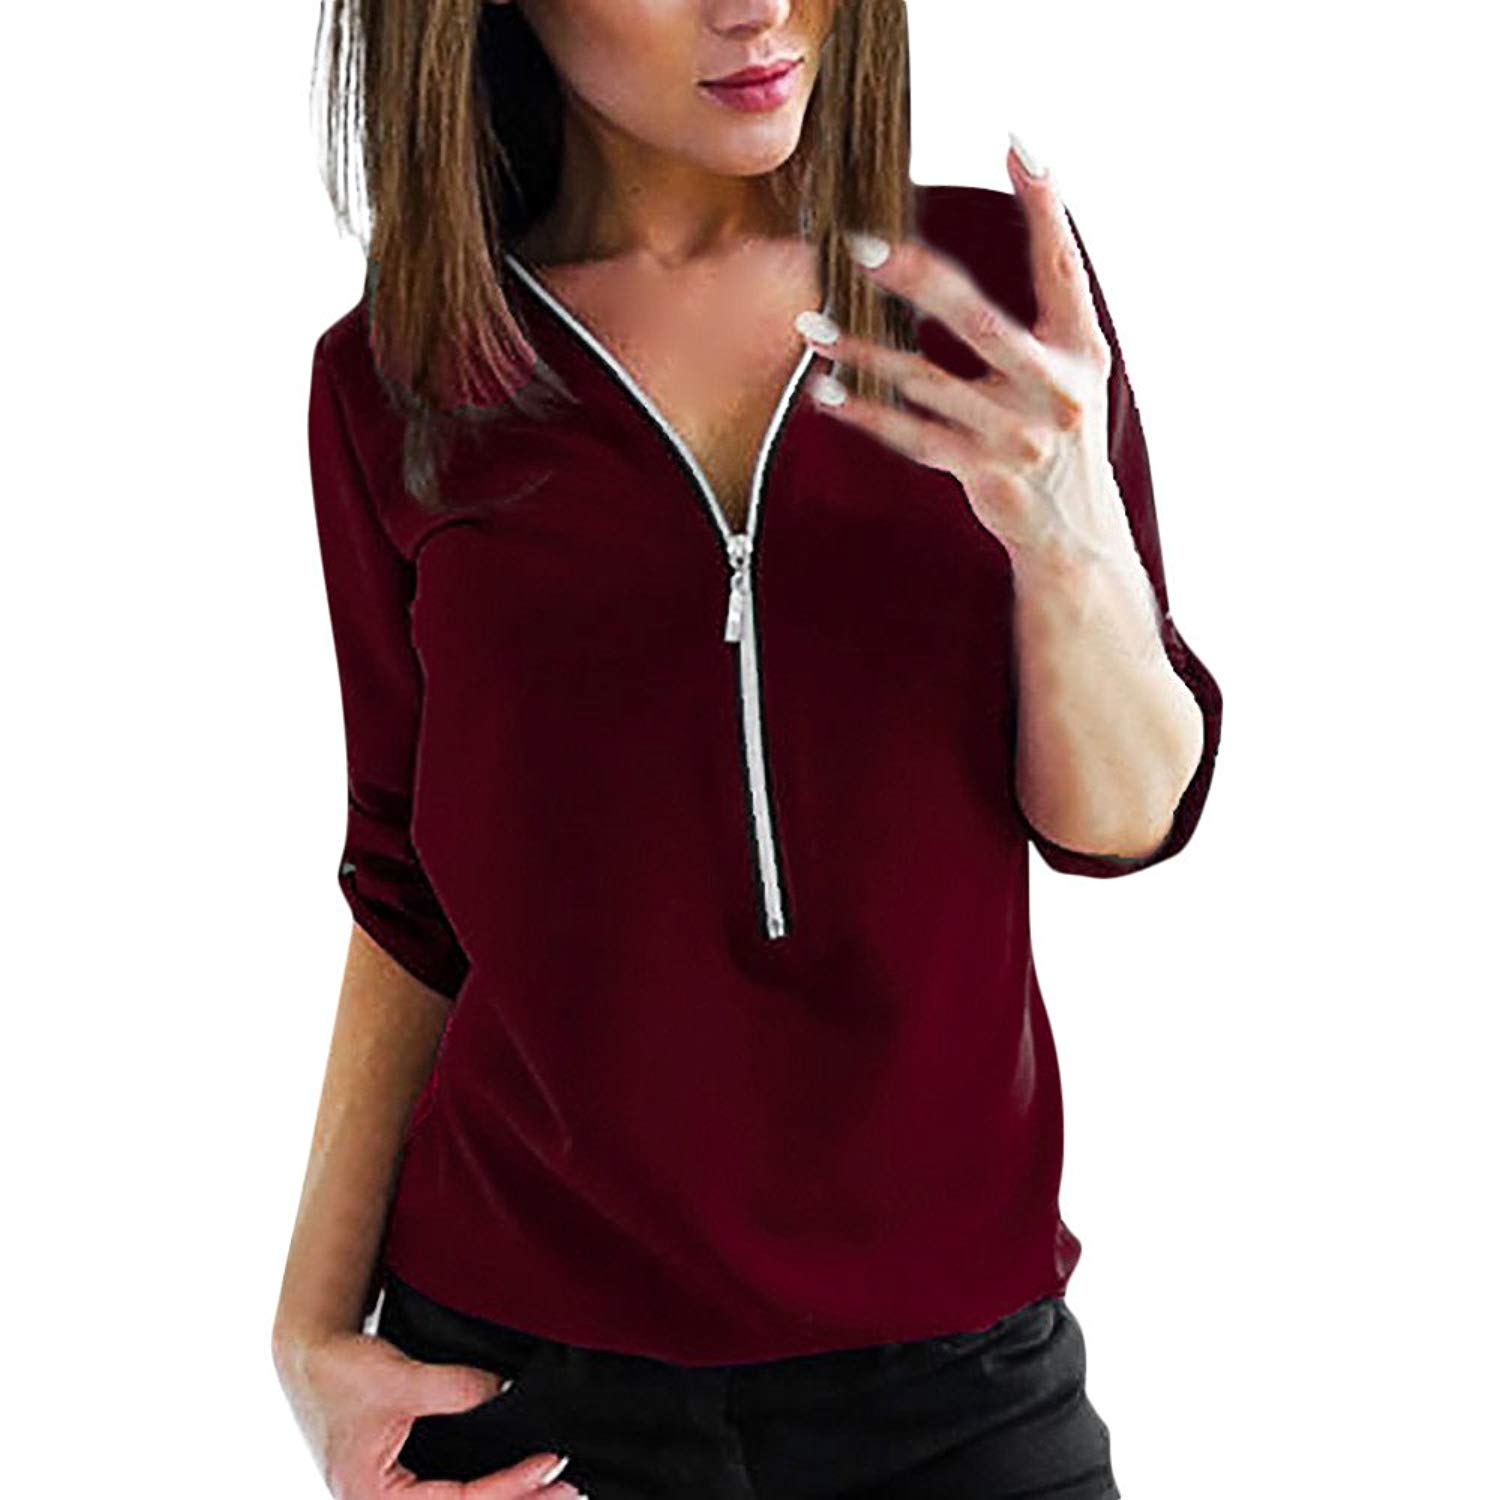 Womens Tops Long Sleeve Solid V-Neck Zipper Casual Tunic T-Shirt Blouse Shirts for Ladies Teen Girls